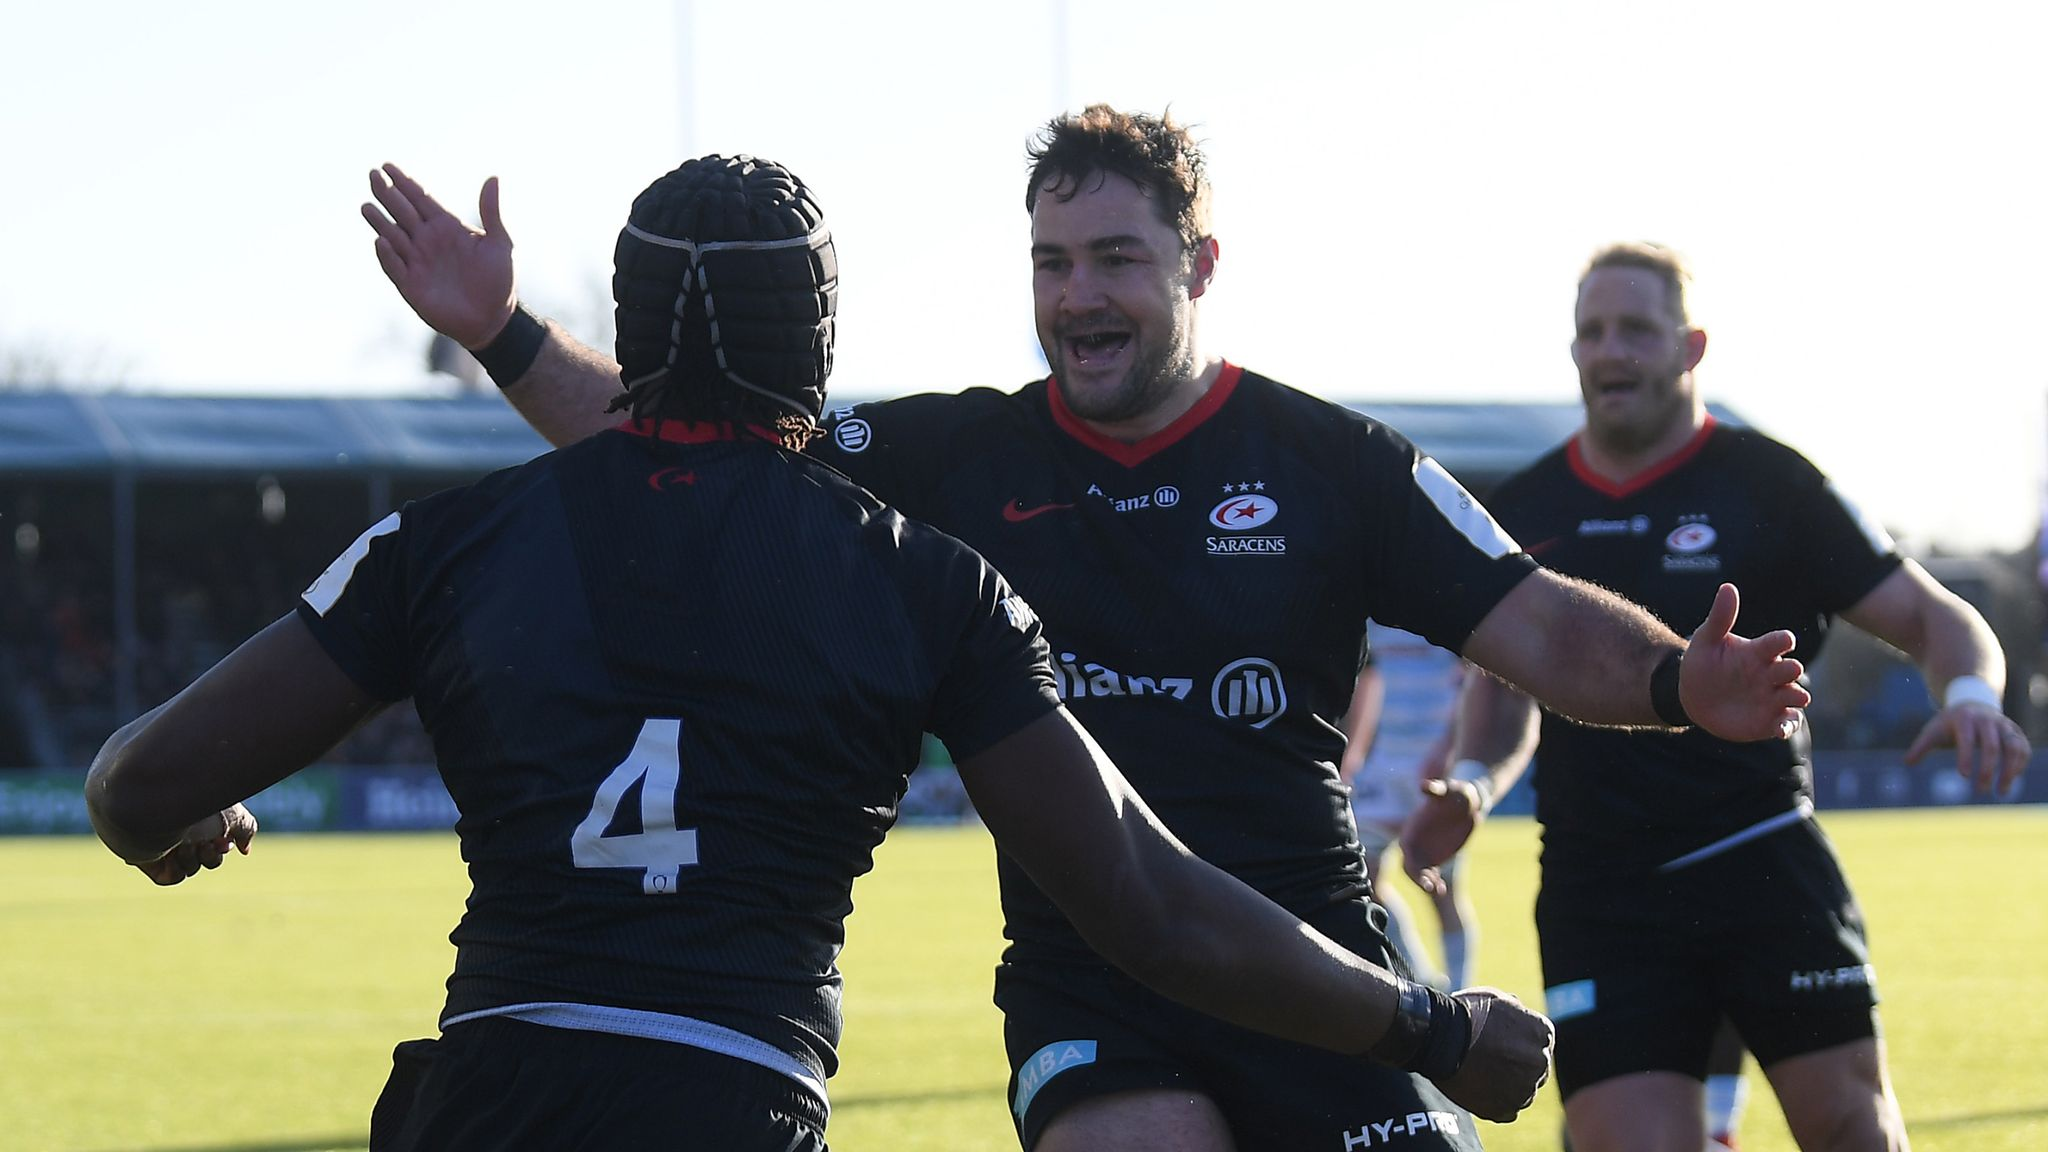 Champions Cup quarter-finals: Saracens travel to Leinster